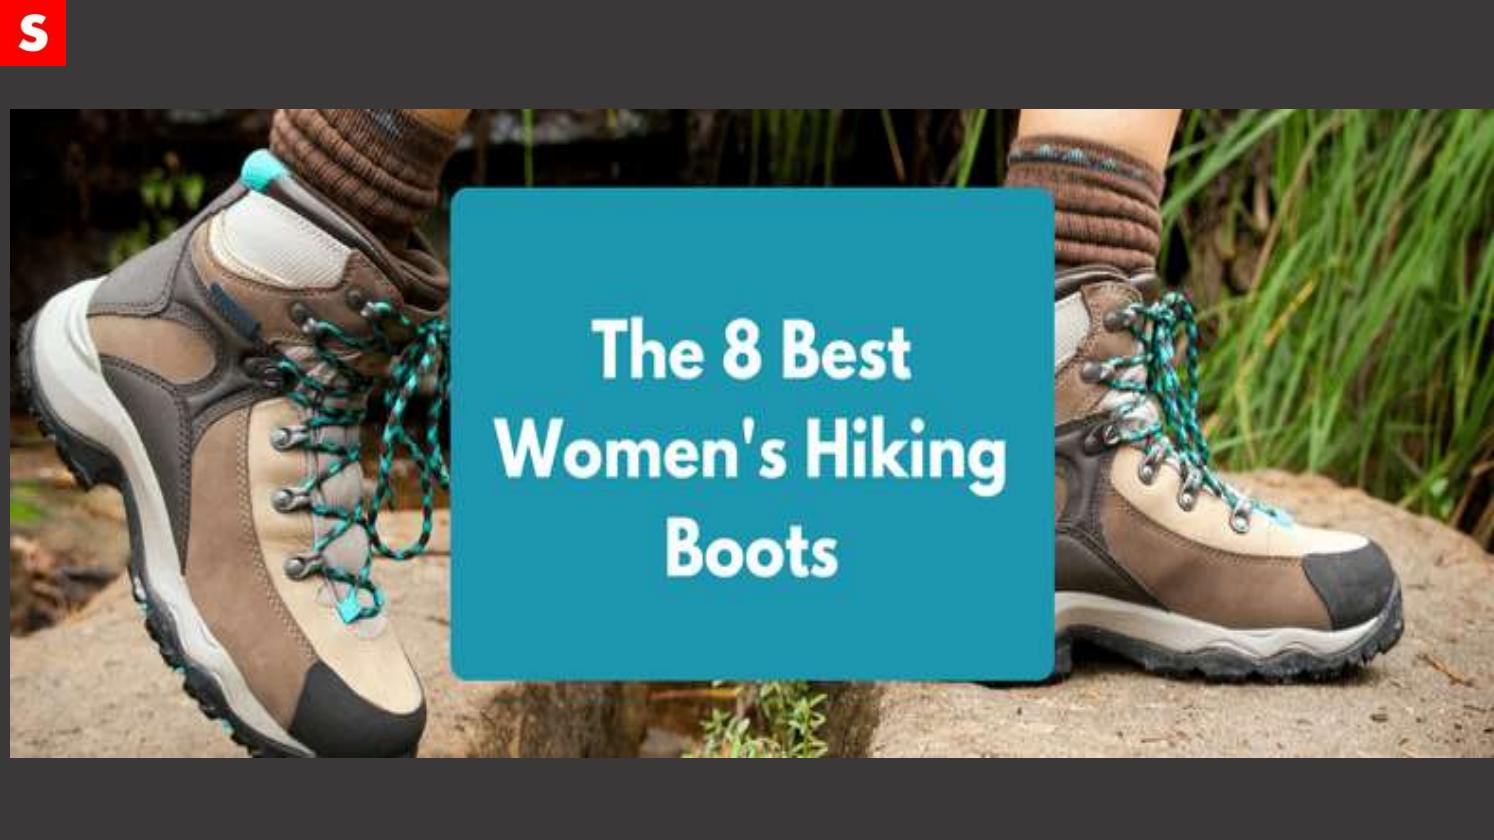 HIKING BOOTS by SimplyBestOf